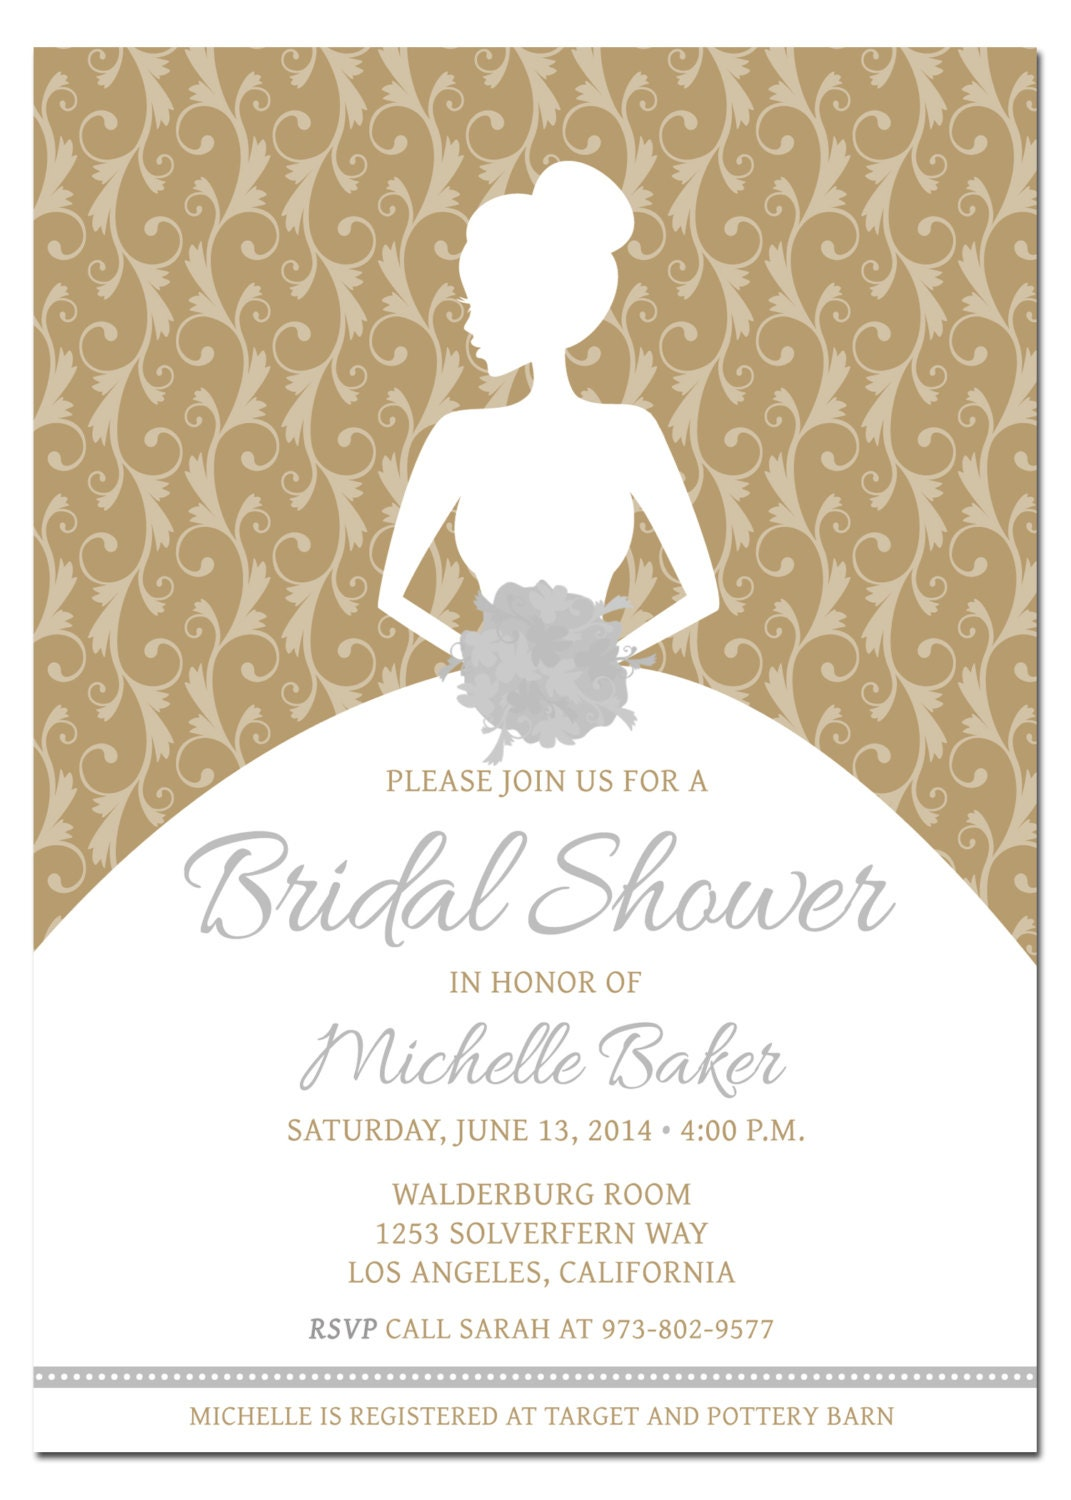 Printable diy bridal shower invitation template with for Free bridal shower templates